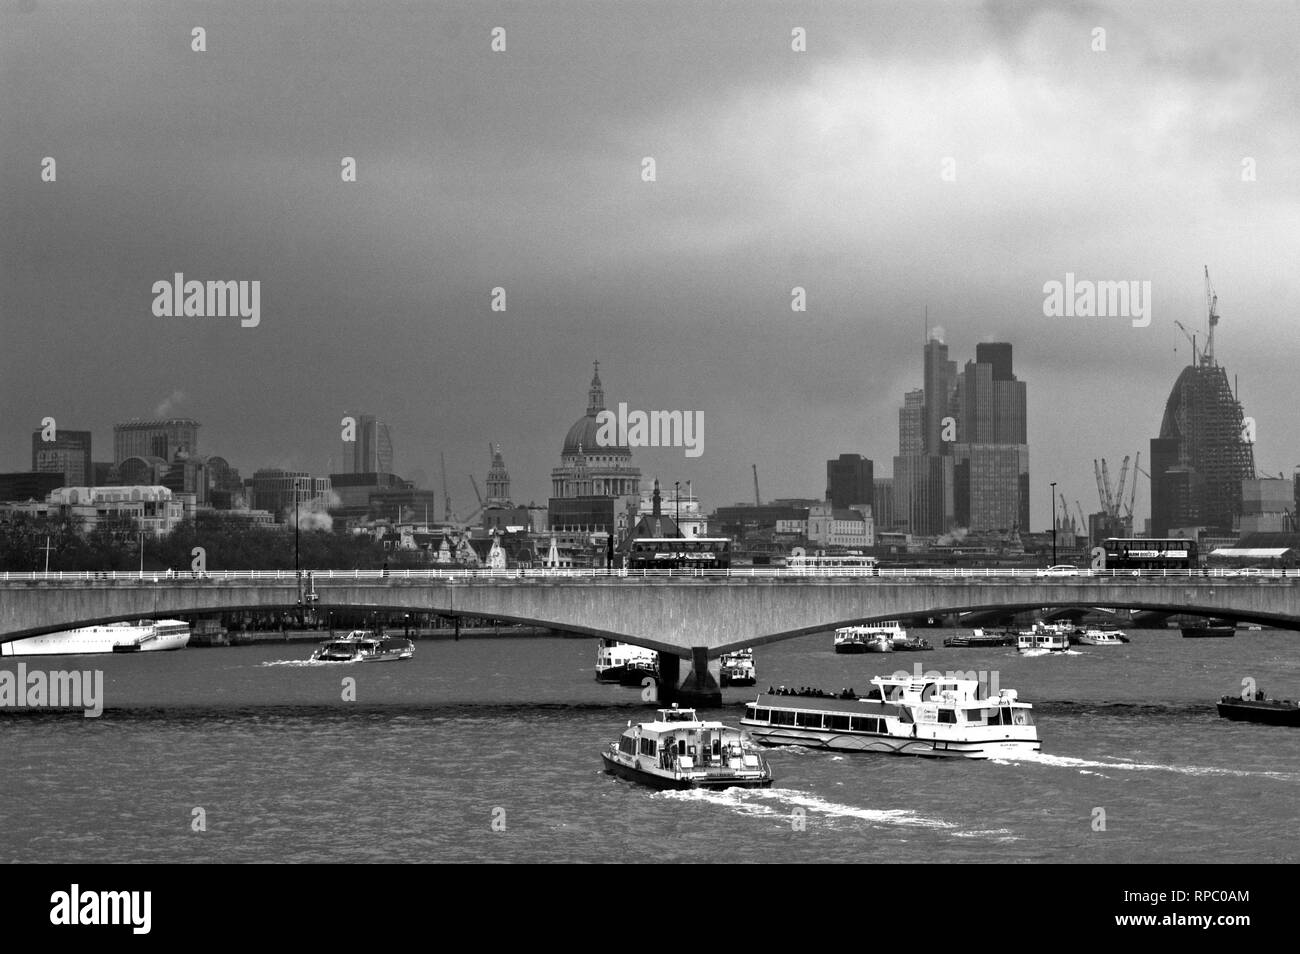 Black and White View of the Thames on a Cloudy Day - Stock Image